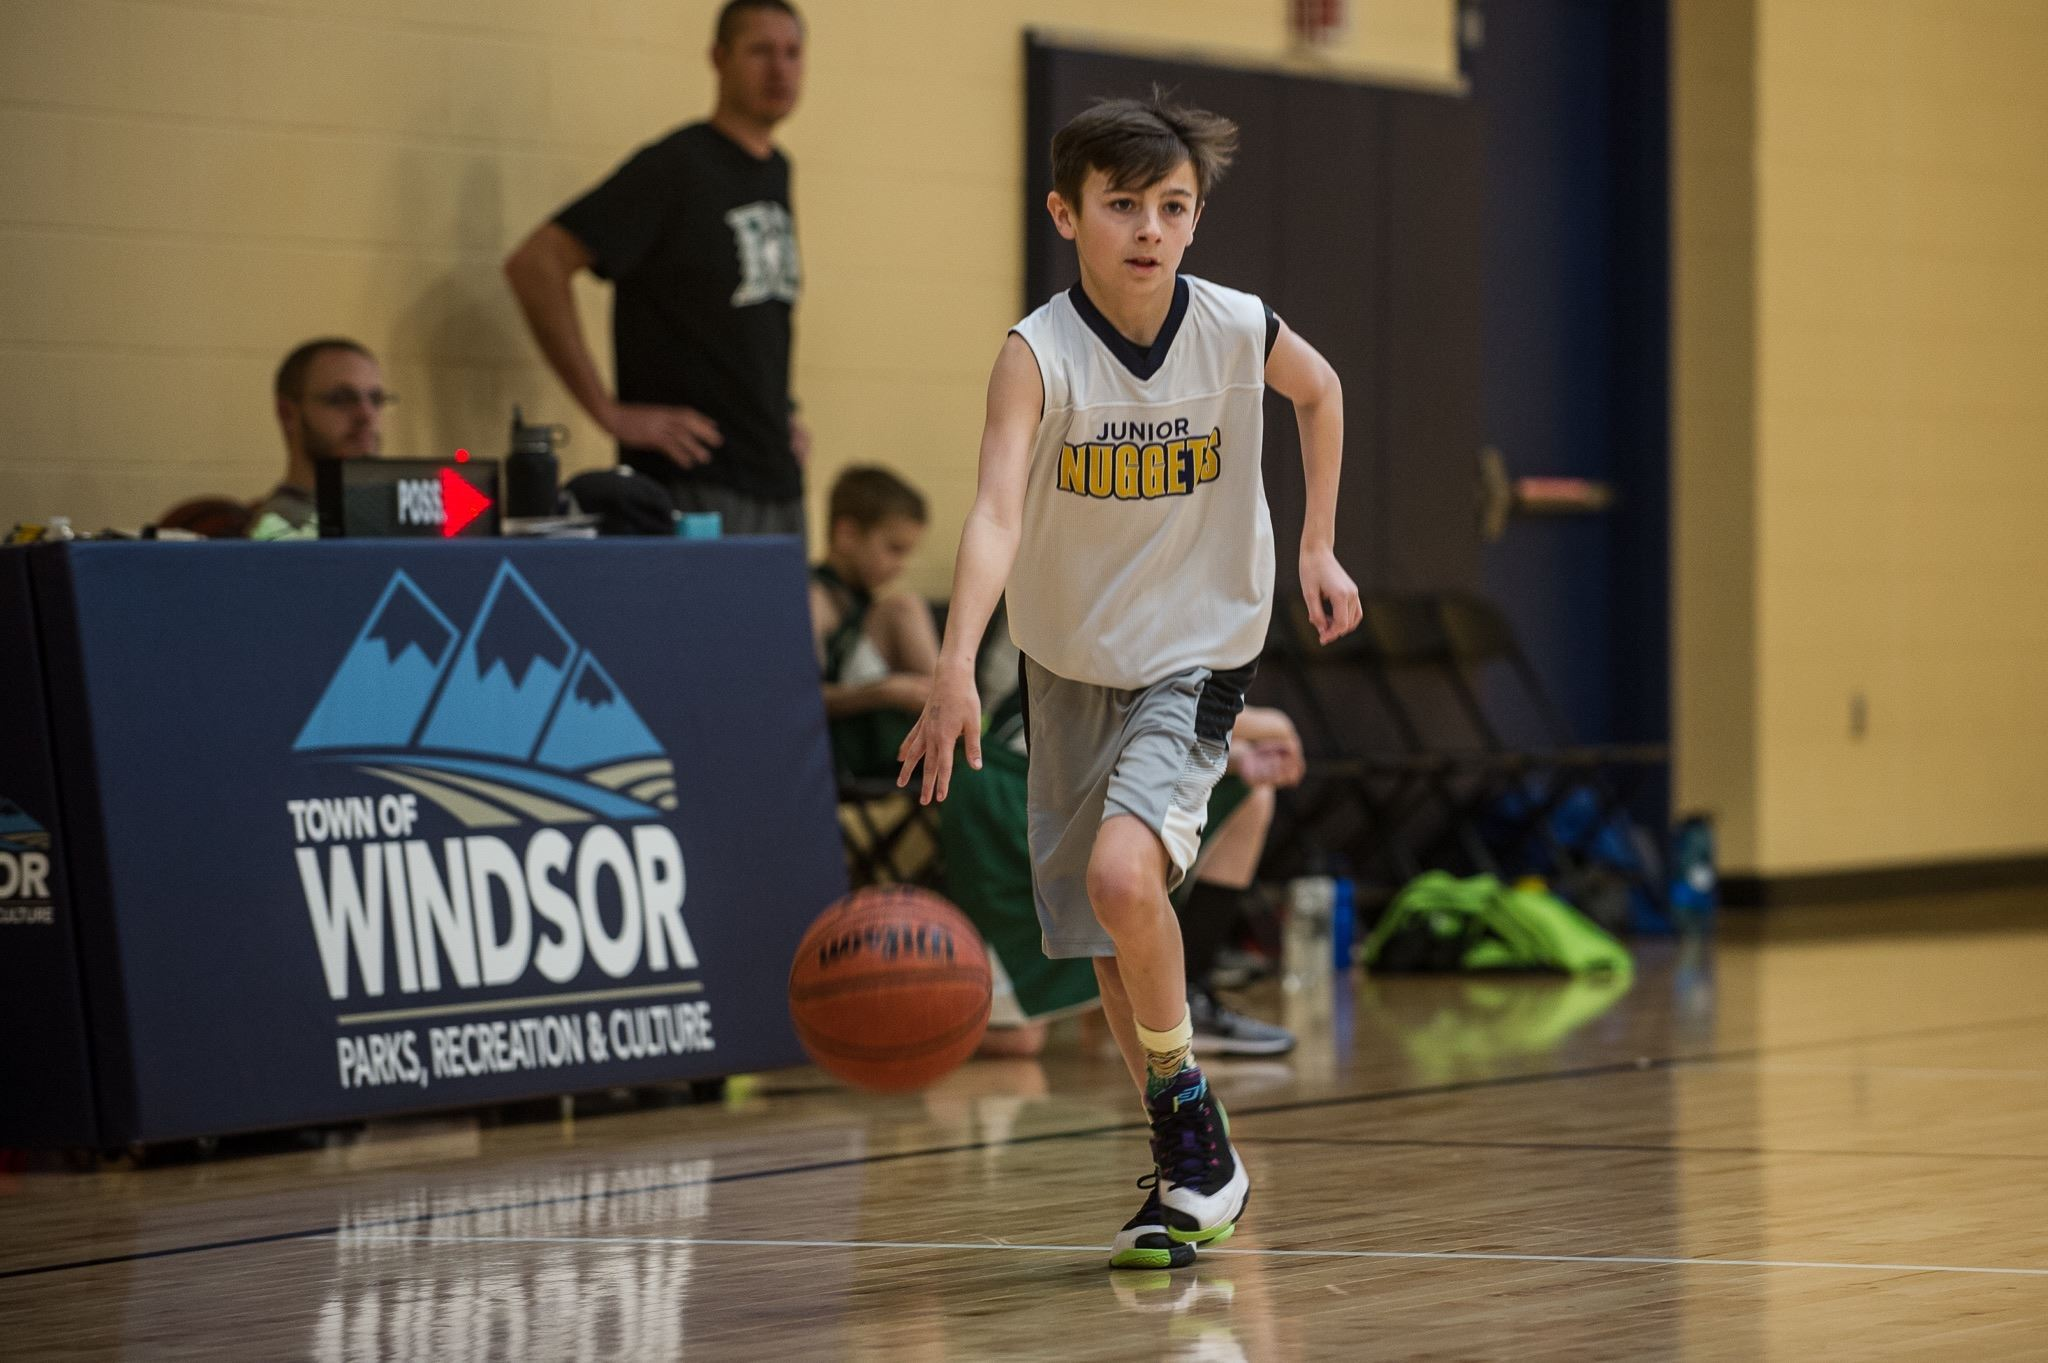 Boy Running and Dribbling Basketball